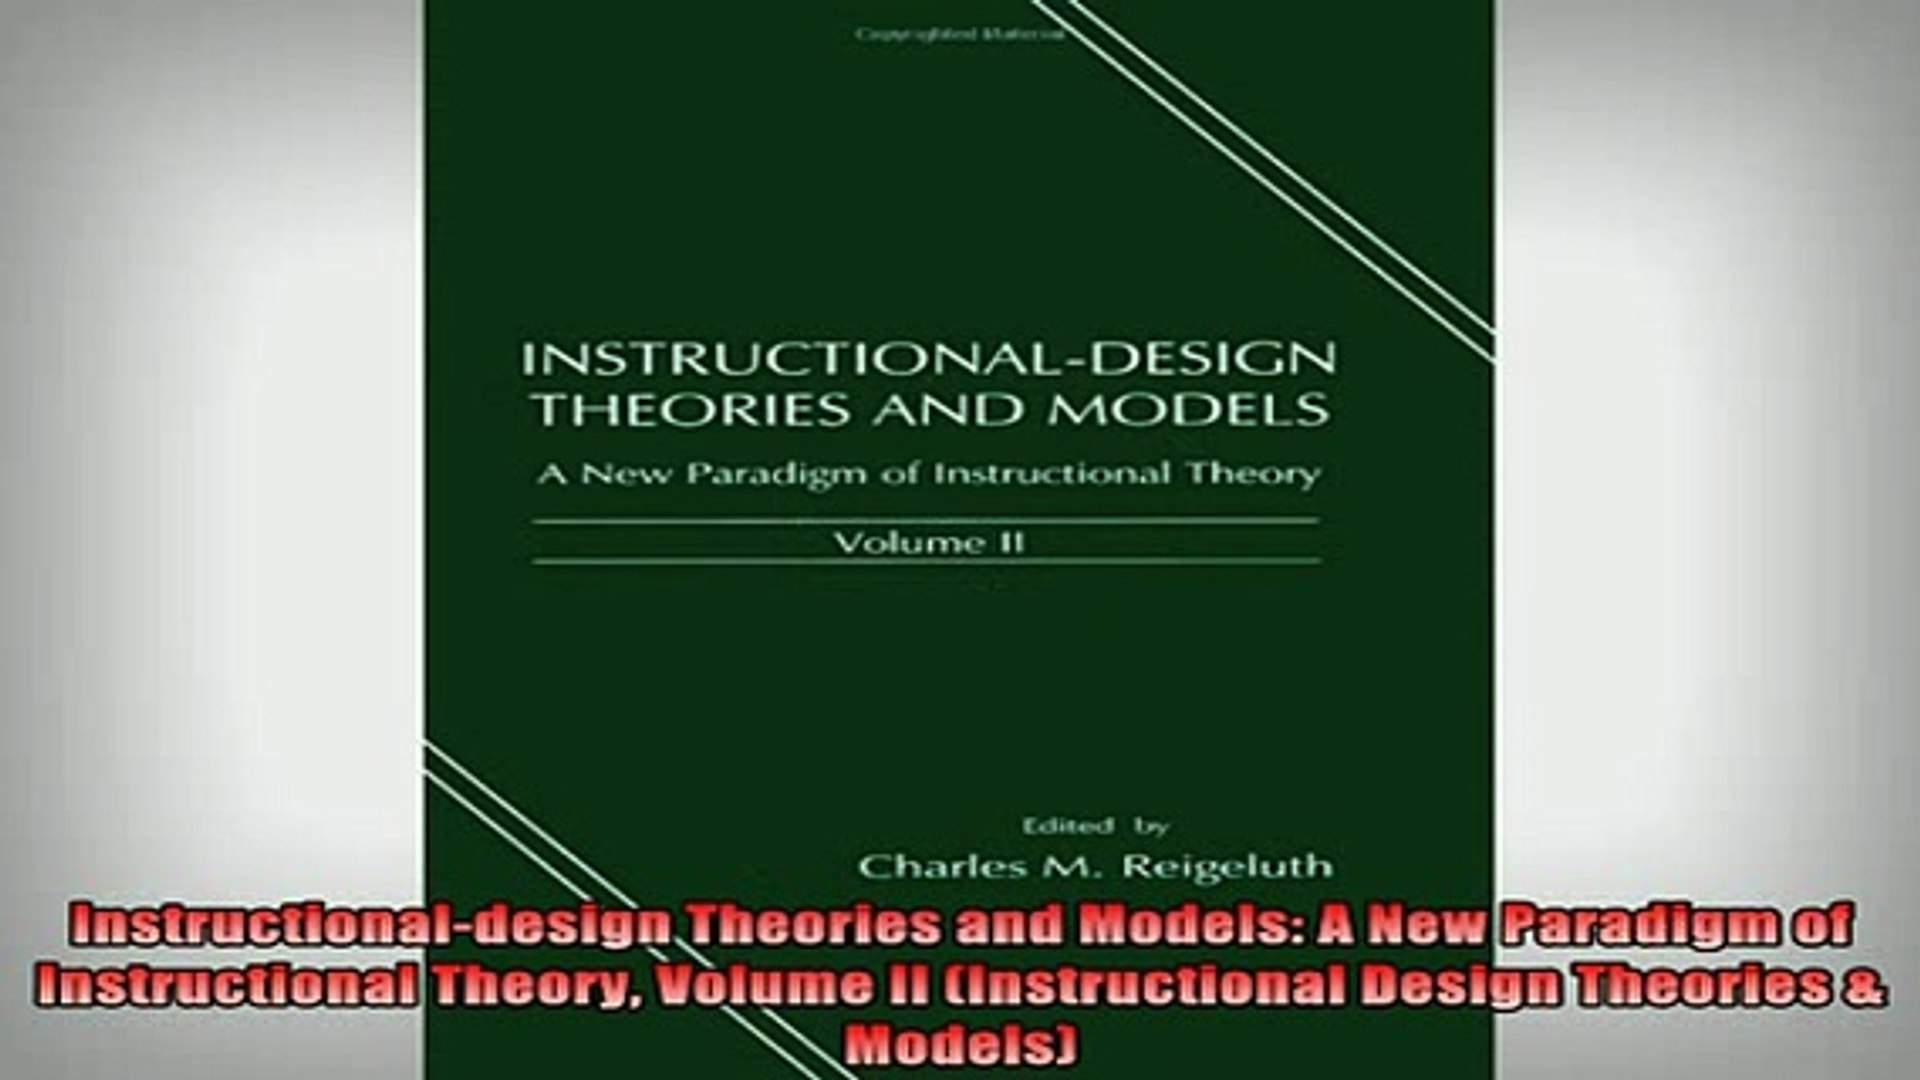 Read Book Instructionaldesign Theories And Models A New Paradigm Of Instructional Theory Volume Ii Full Free Video Dailymotion